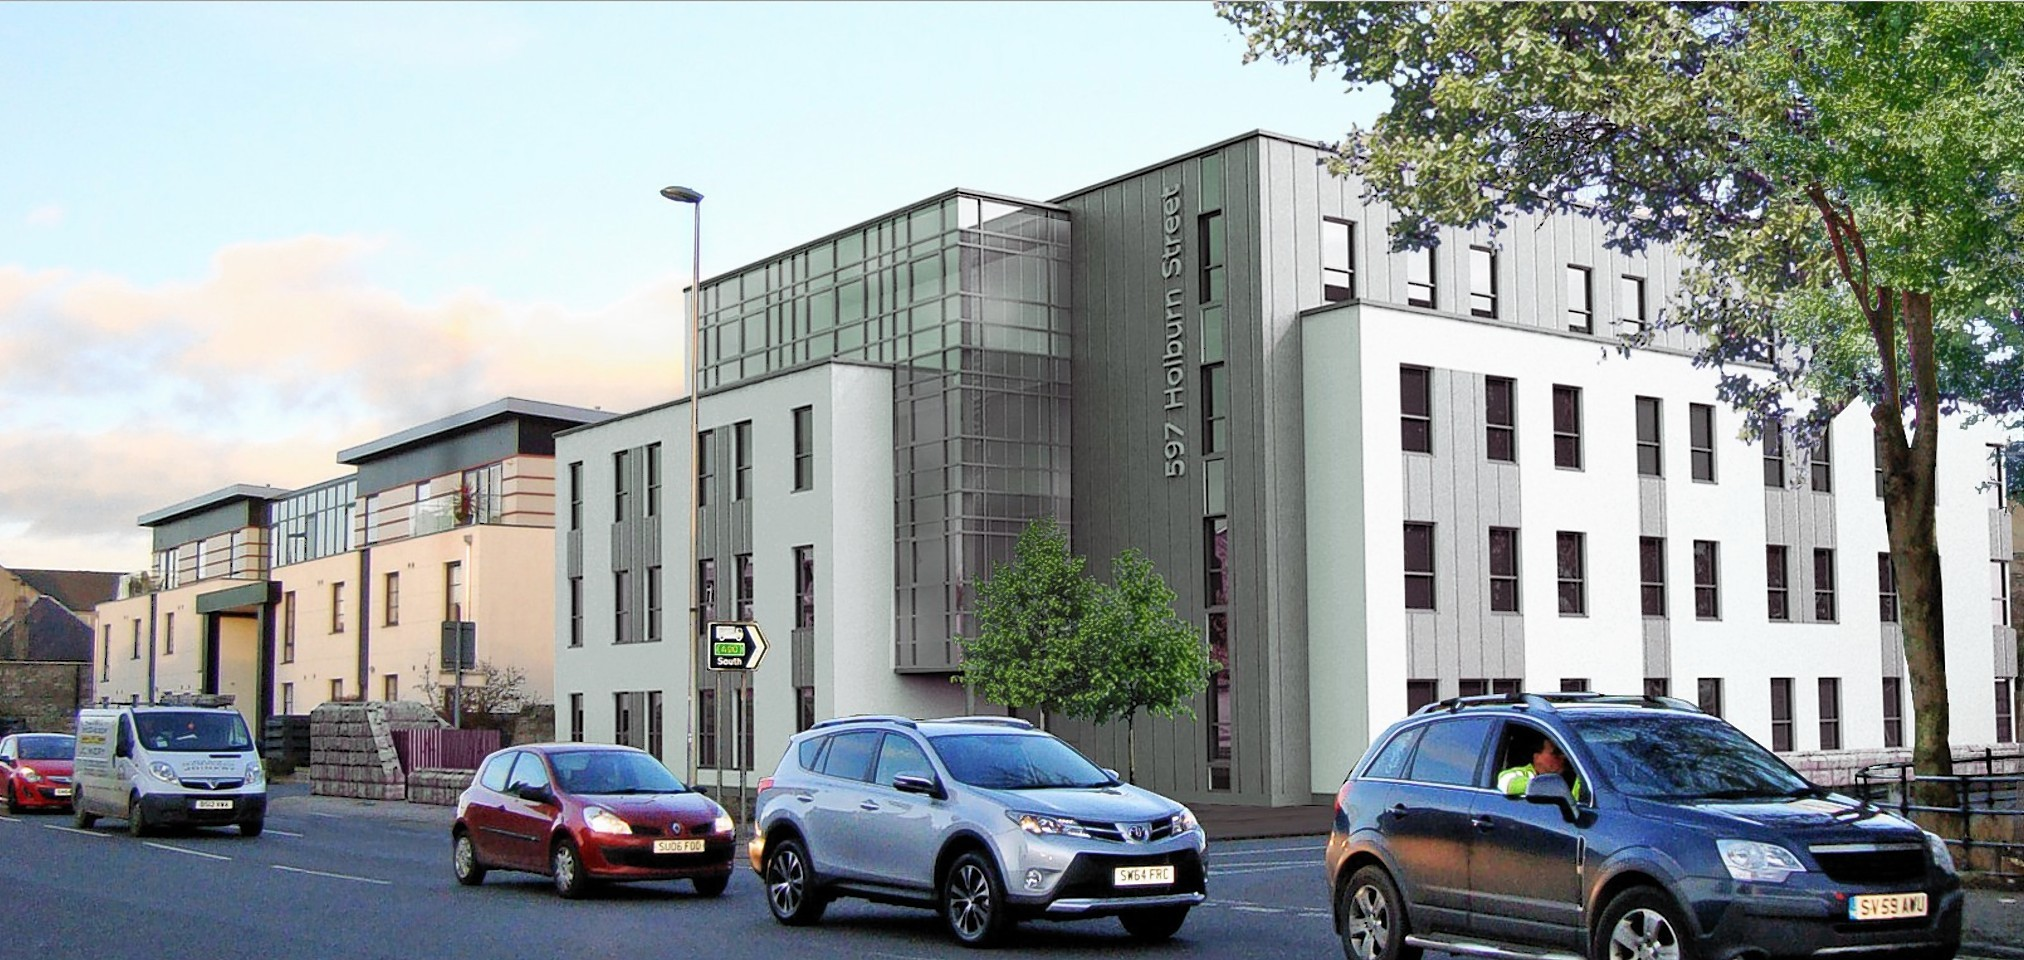 Artist impressions of the plans for student flats on Holburn Street